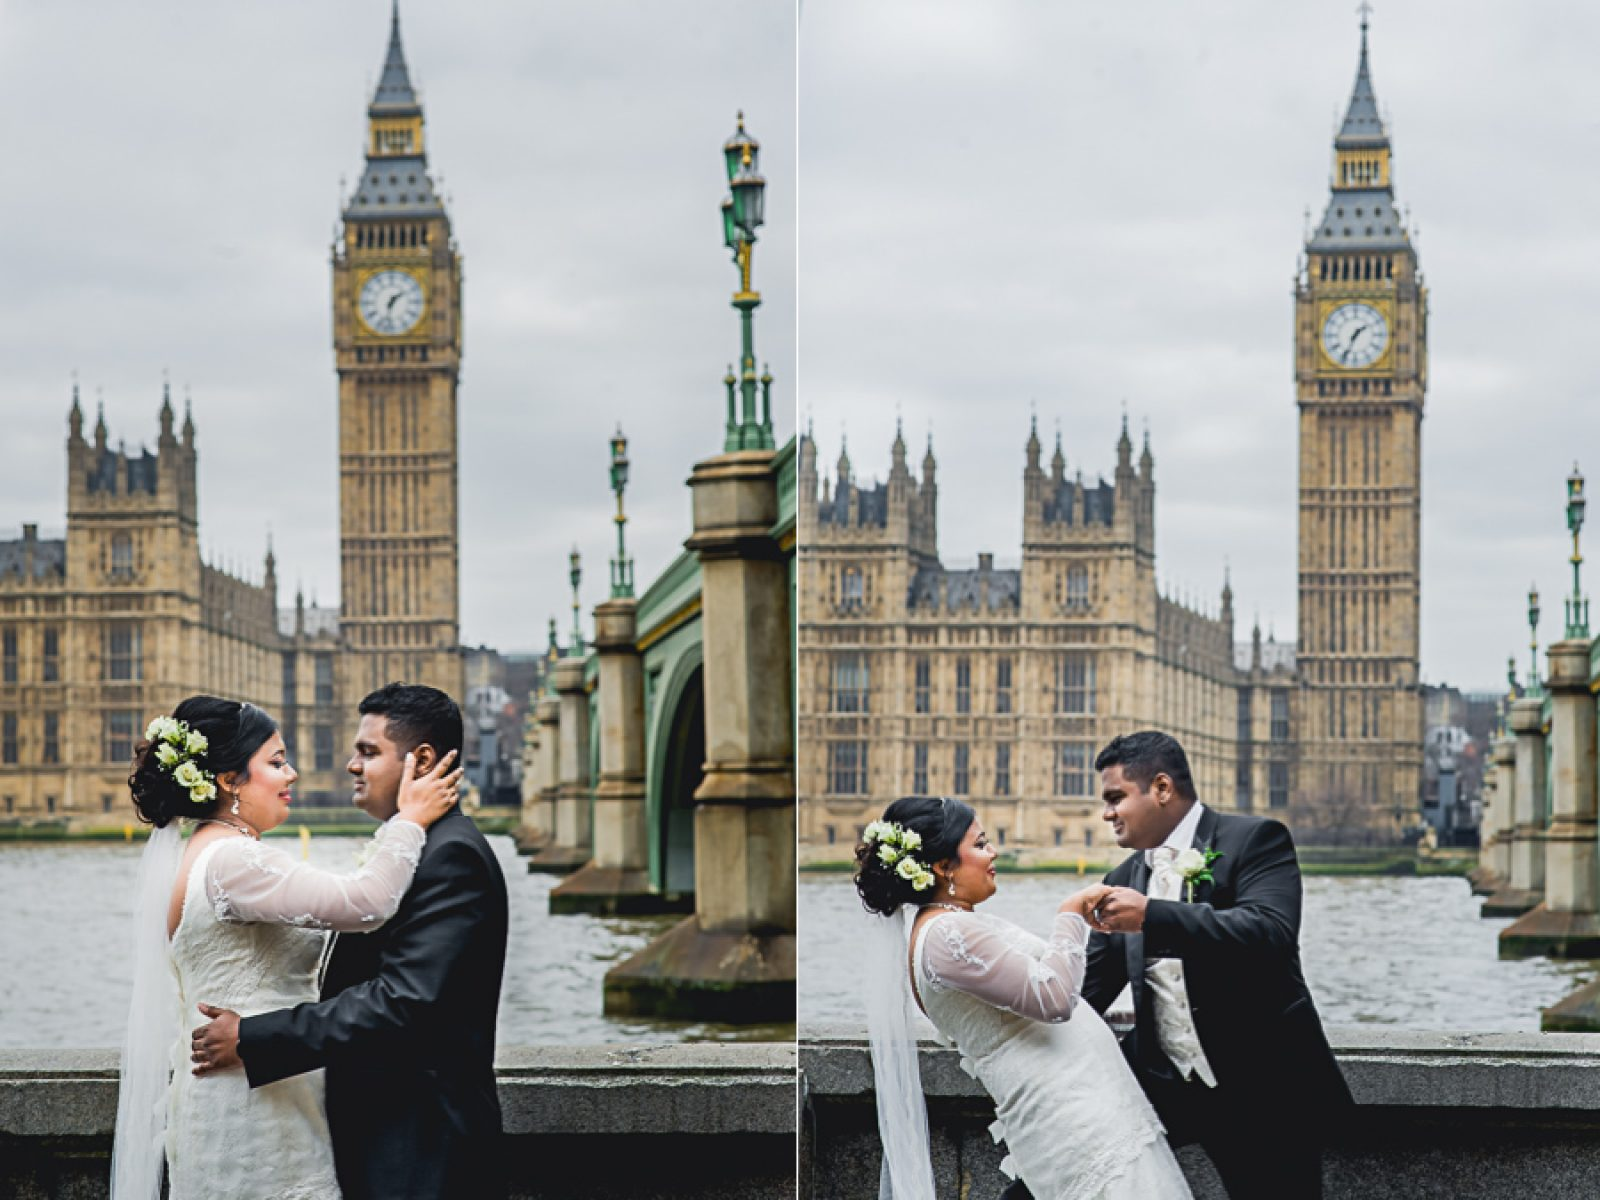 371 1600x1200 - Darshani and Anthony - wedding photographer in London